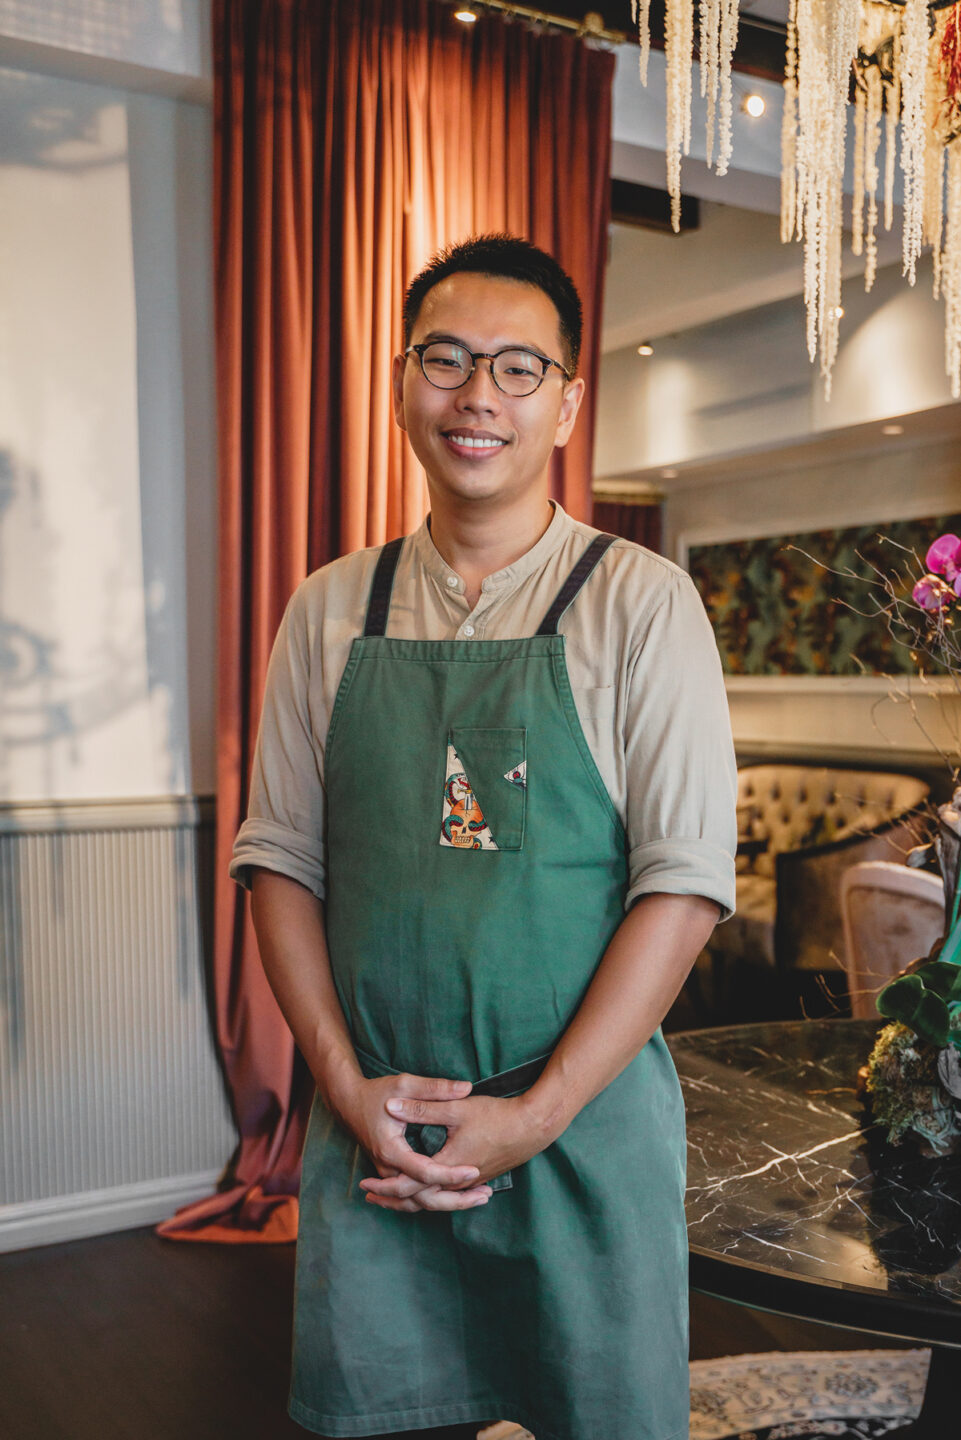 """Cloudstreet Head Chef Mark Tai: """"In A Restaurant, You Are On The Front Line — That's What's Fun And Rewarding To Me"""""""